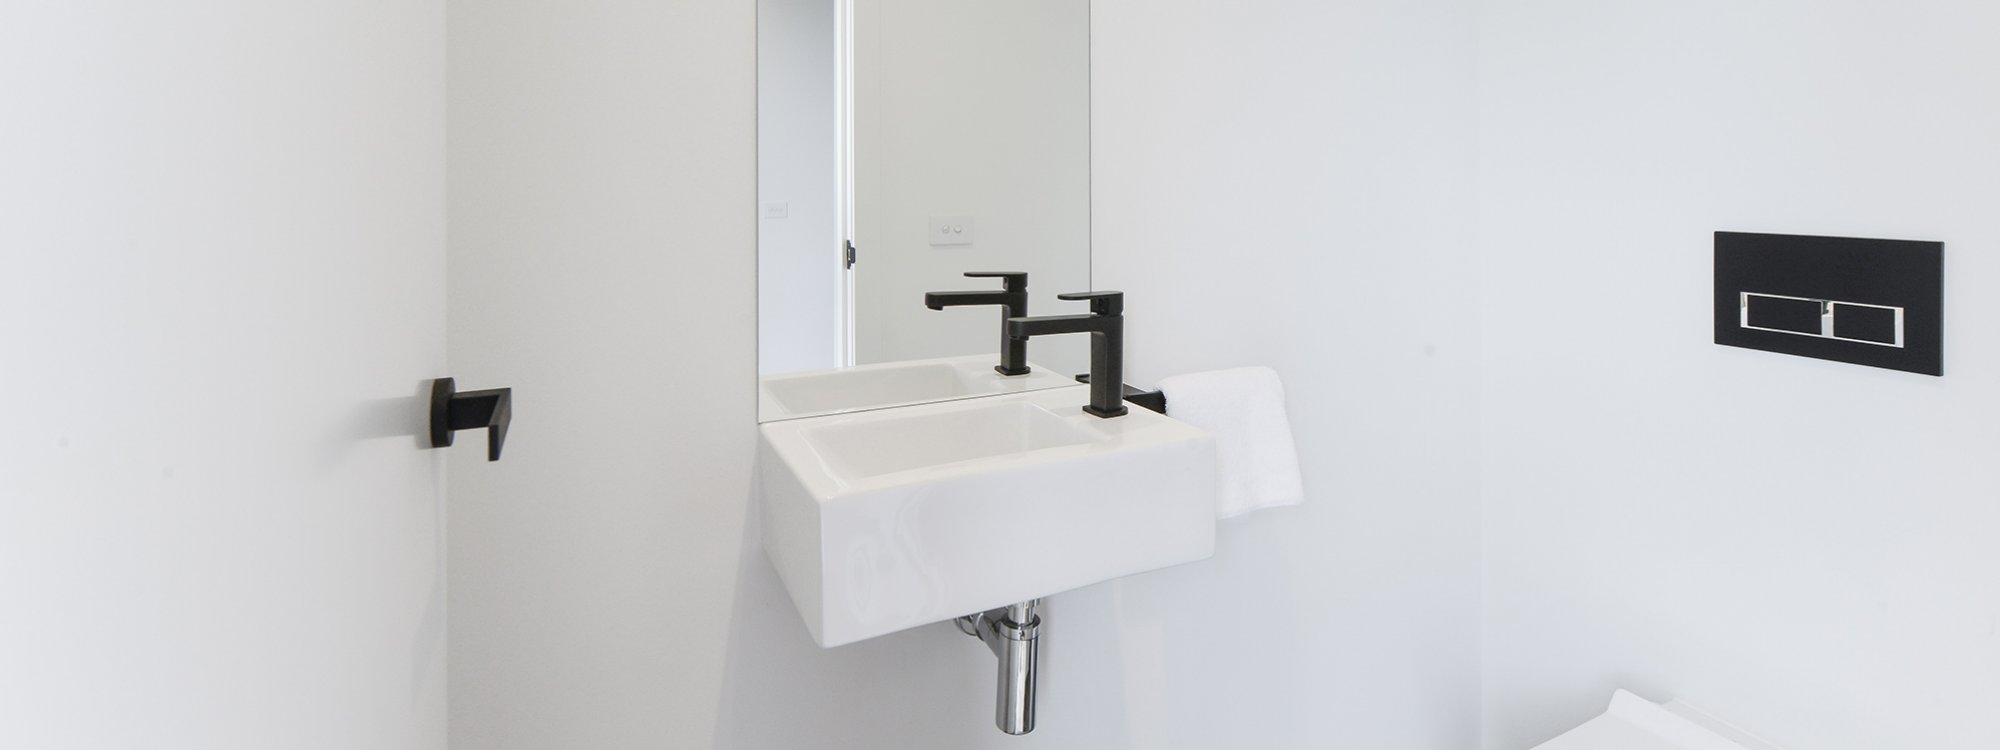 Murrumbeena Place 1 - Murrumbeena - Bathroom 2